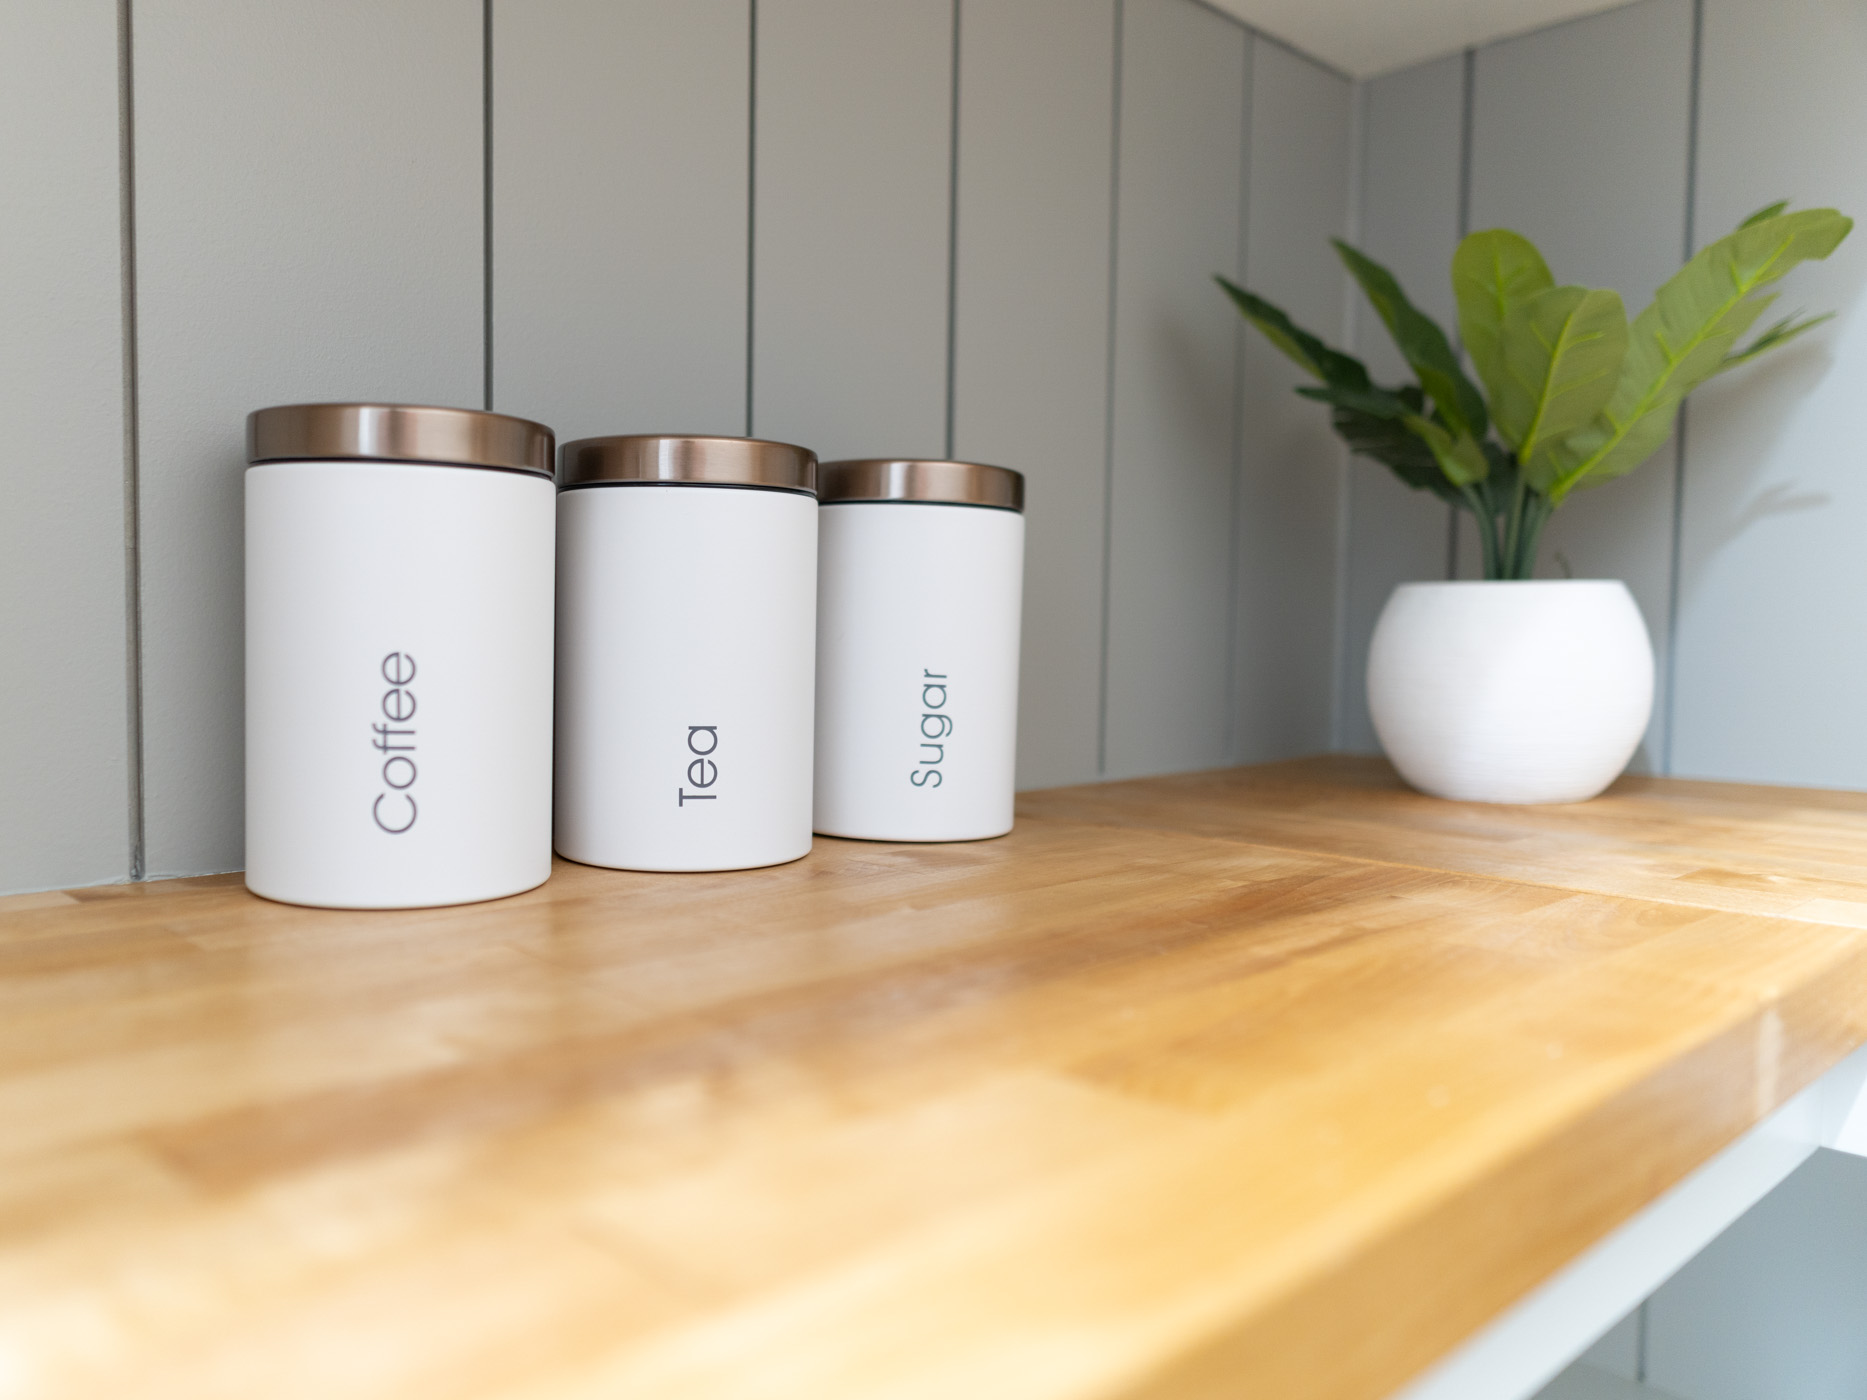 white metal canisters on brown butcher block countertop